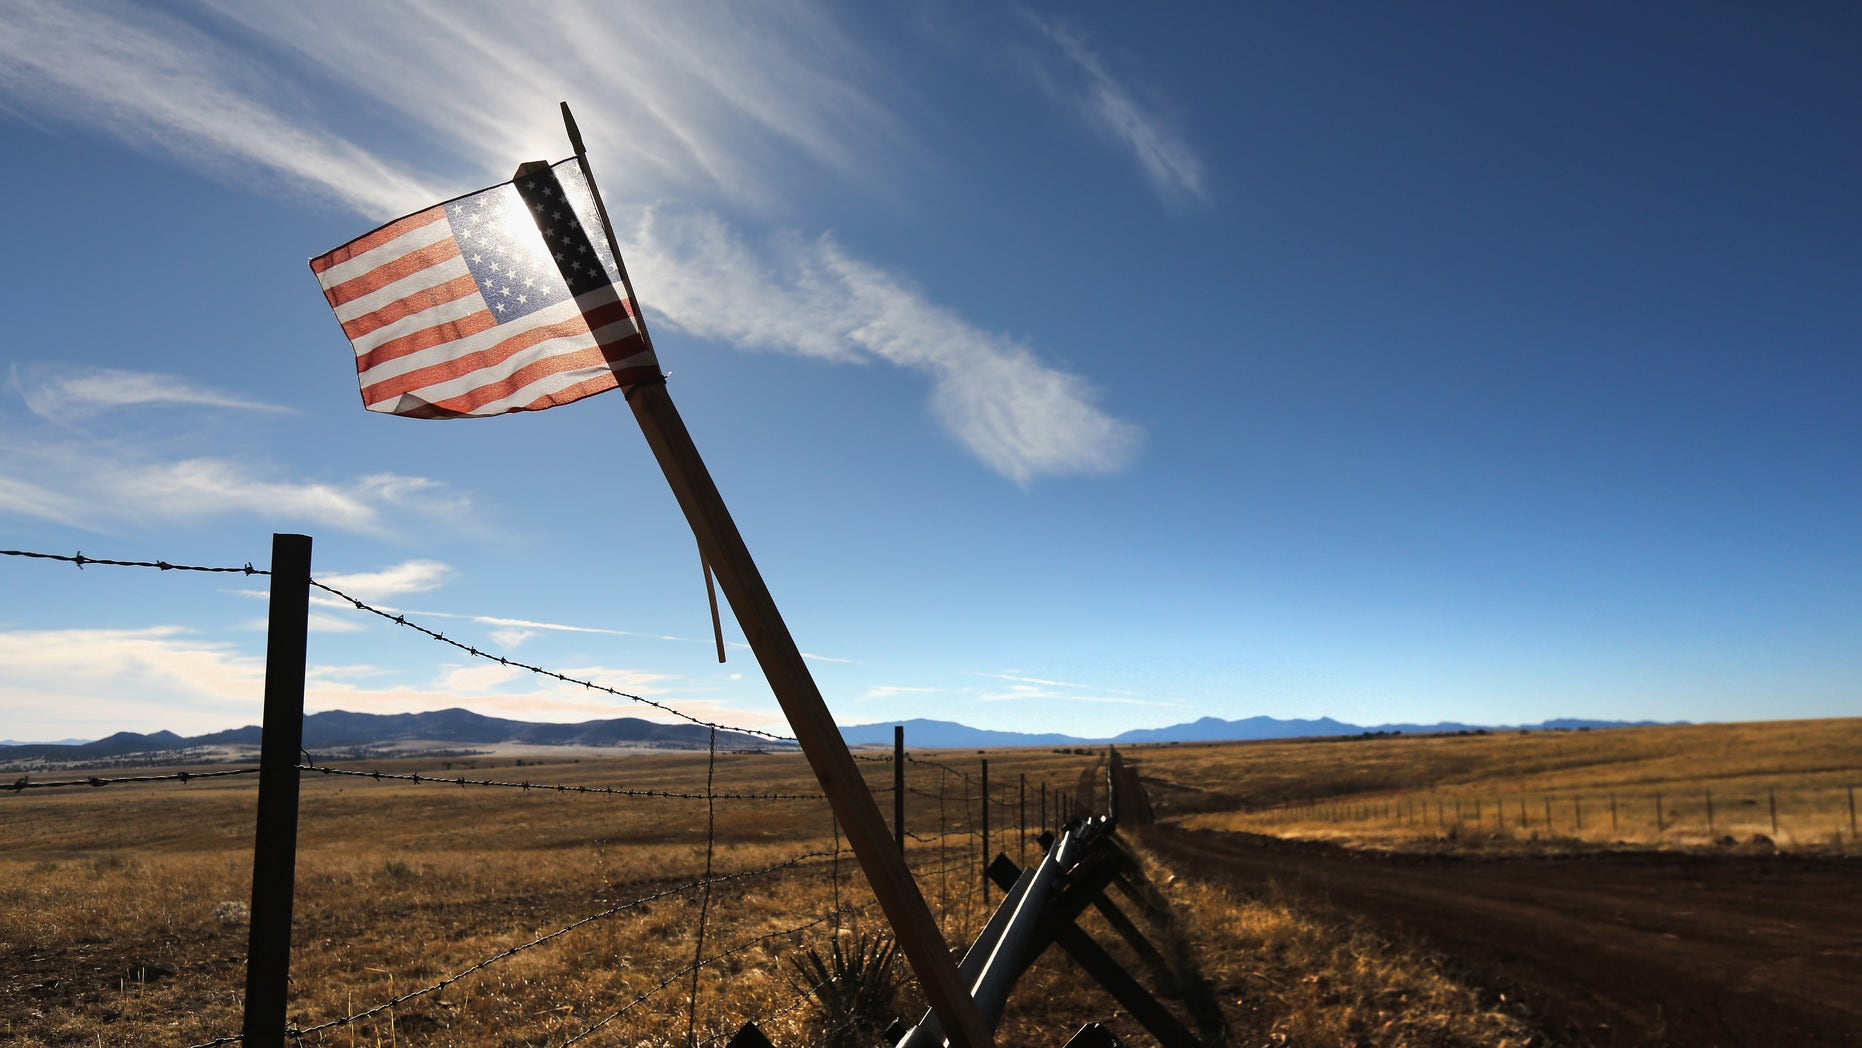 An American flag flies at the U.S.-Mexico border on February 26, 2013 near Sonoita, Arizona.